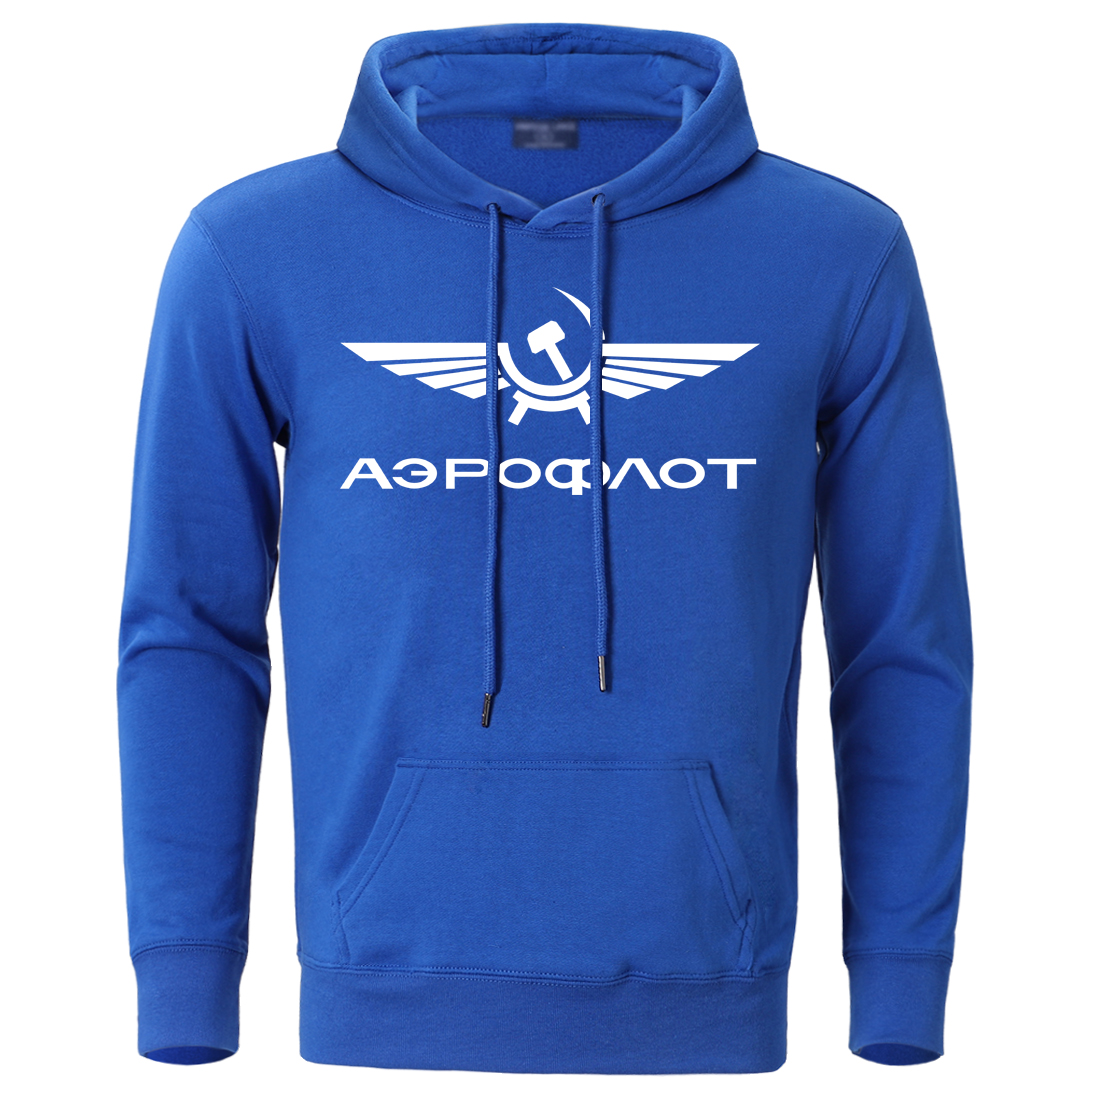 Aeroflot CCCP Civil Aviation Ussr Russia Airforce Hip Hop Hoodies Sweatshirts Mens 2019 Autumn Winter Simple Print Streetwear